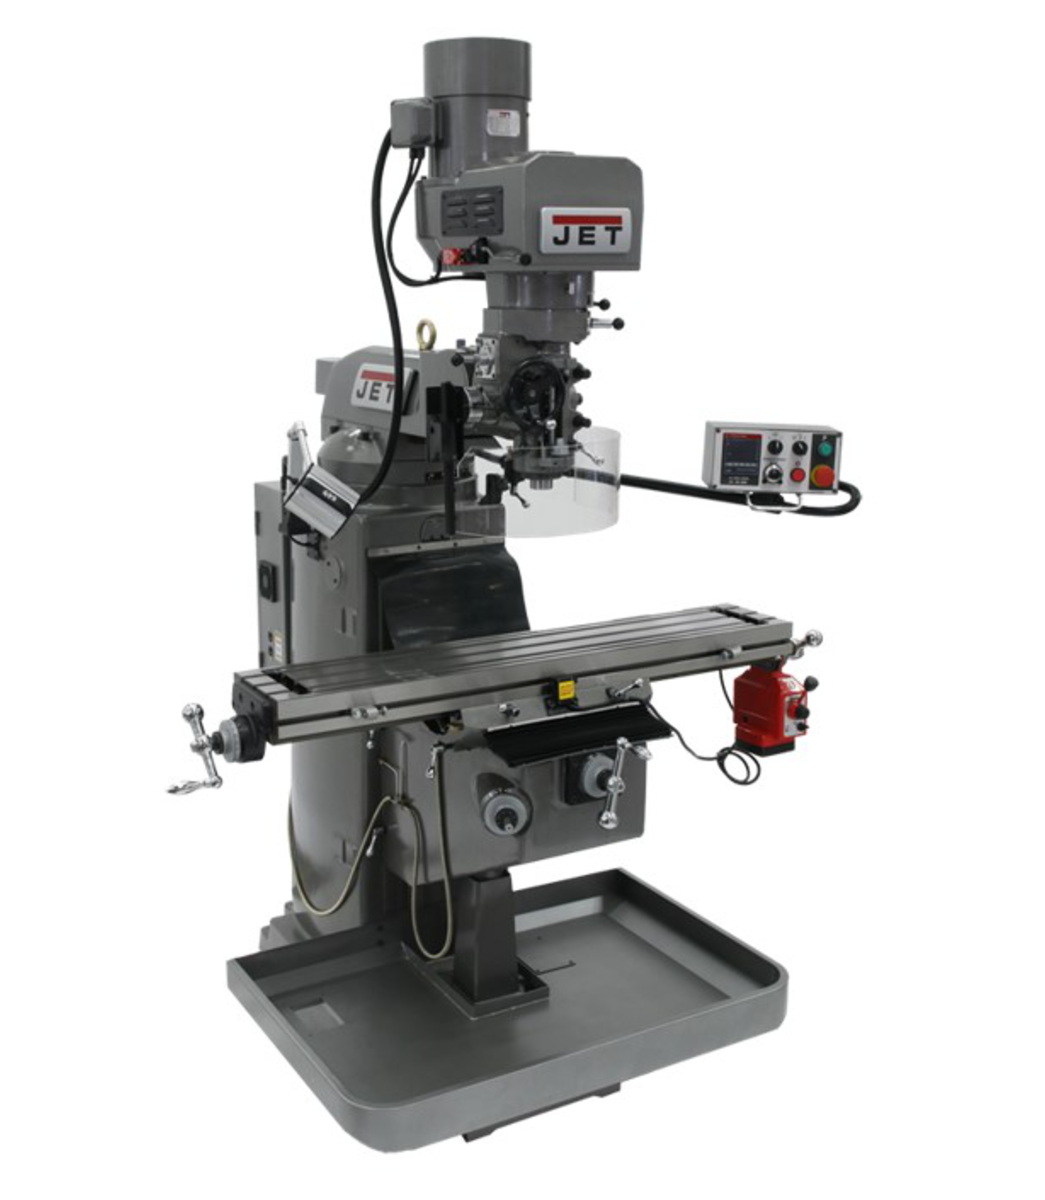 JTM-1050EVS2/230 Mill With Acu-Rite 203 DRO With X-Axis Powerfeed